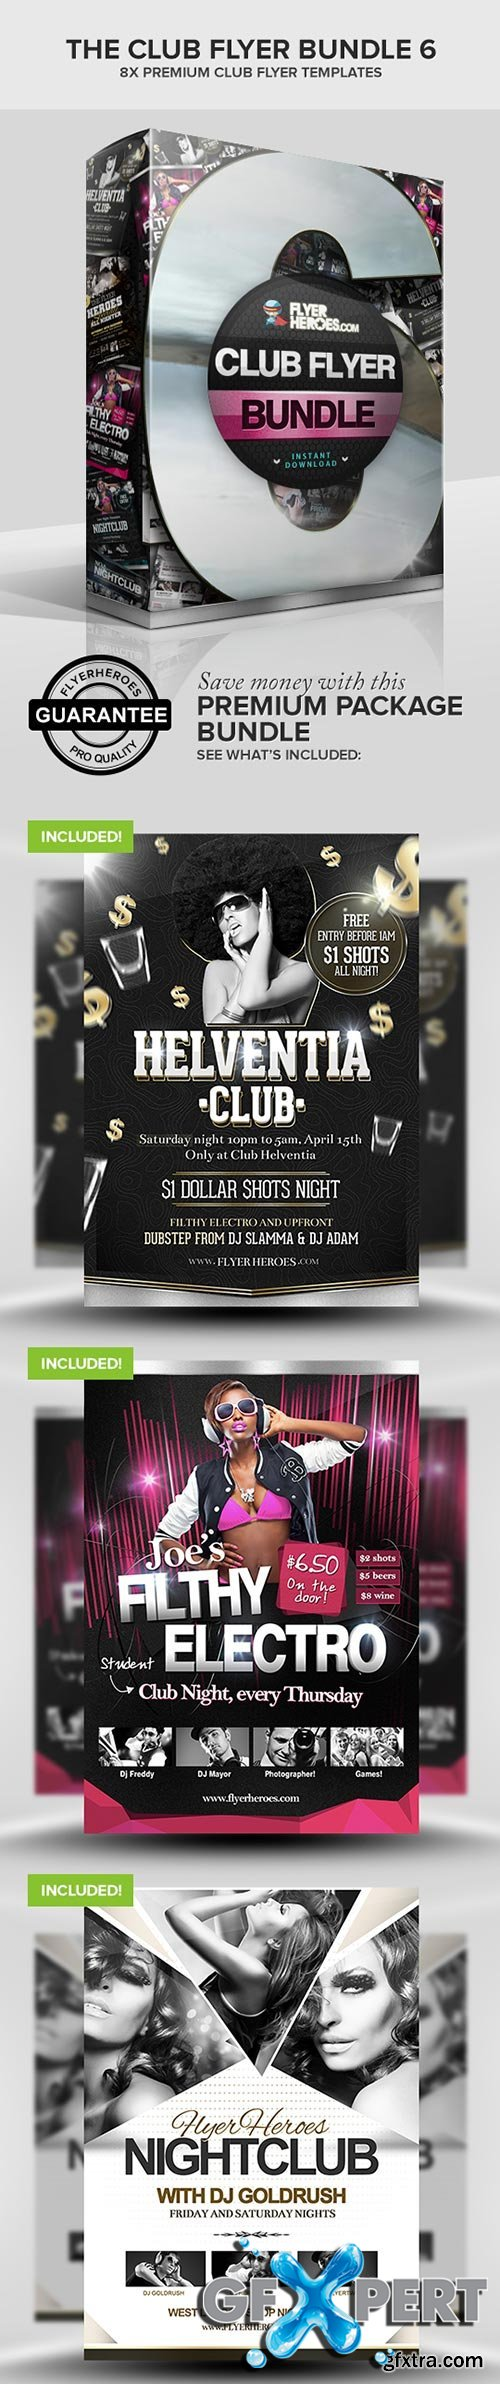 The Club Flyer Bundle 6